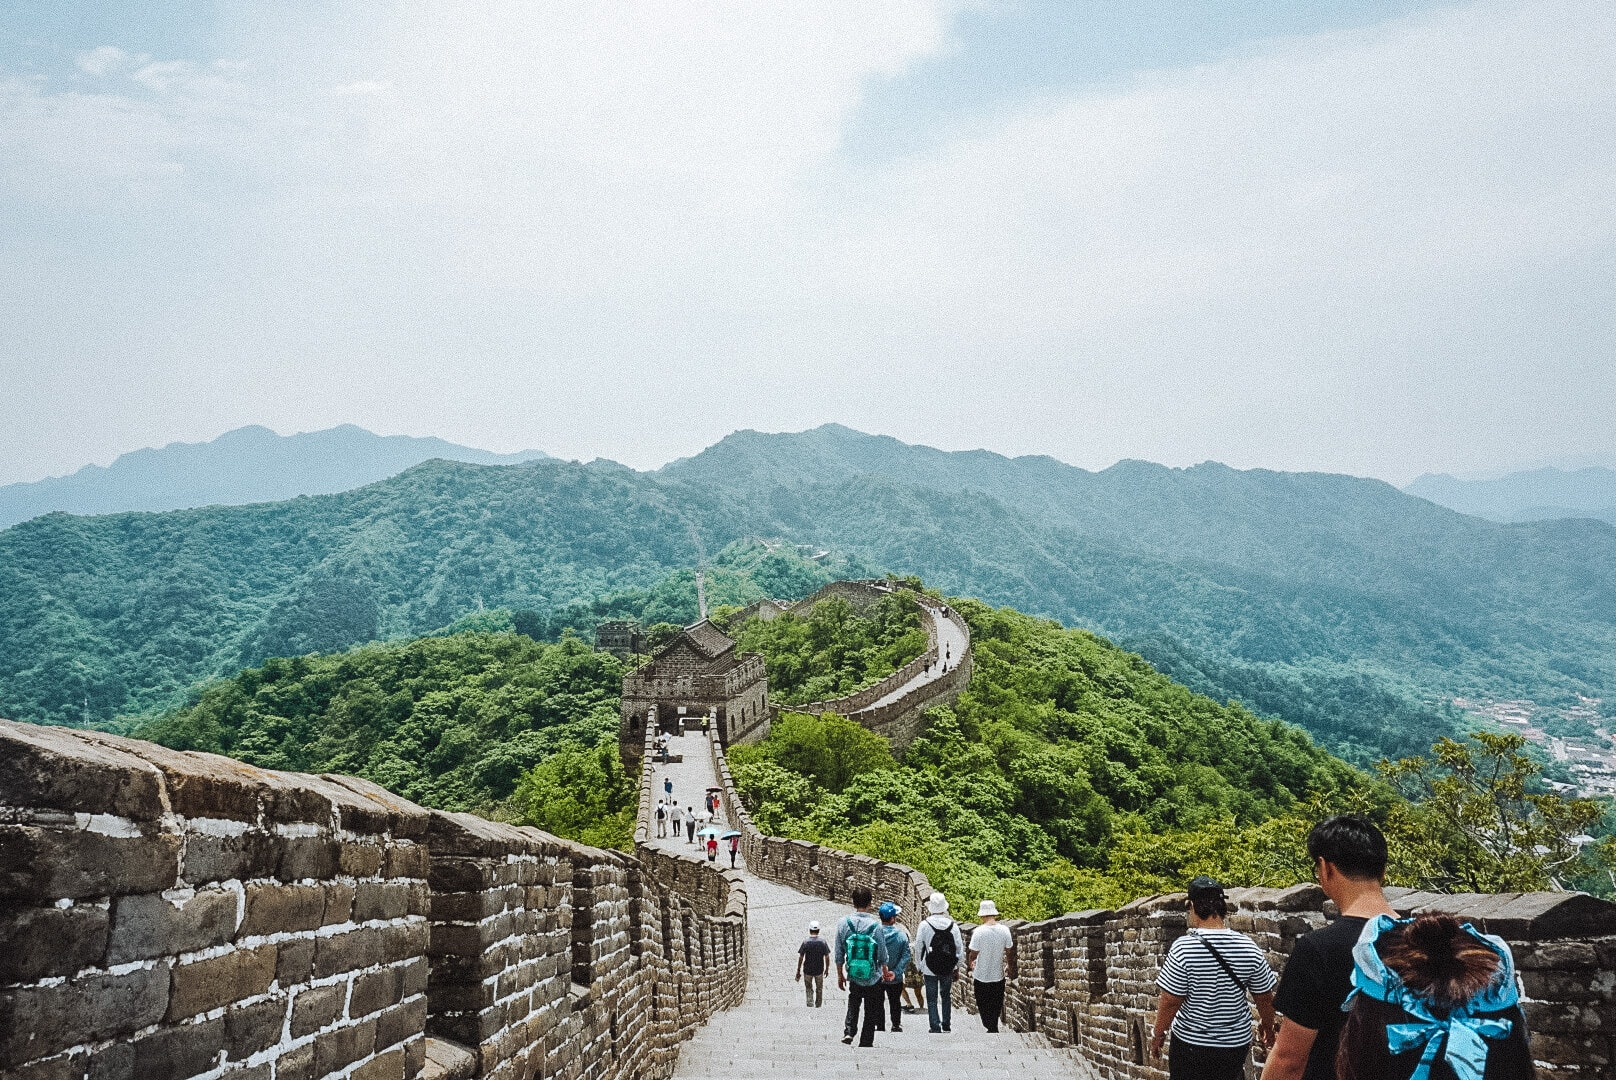 Travel bloggers reveal their favorite experiences in the world - The Great Wall of China